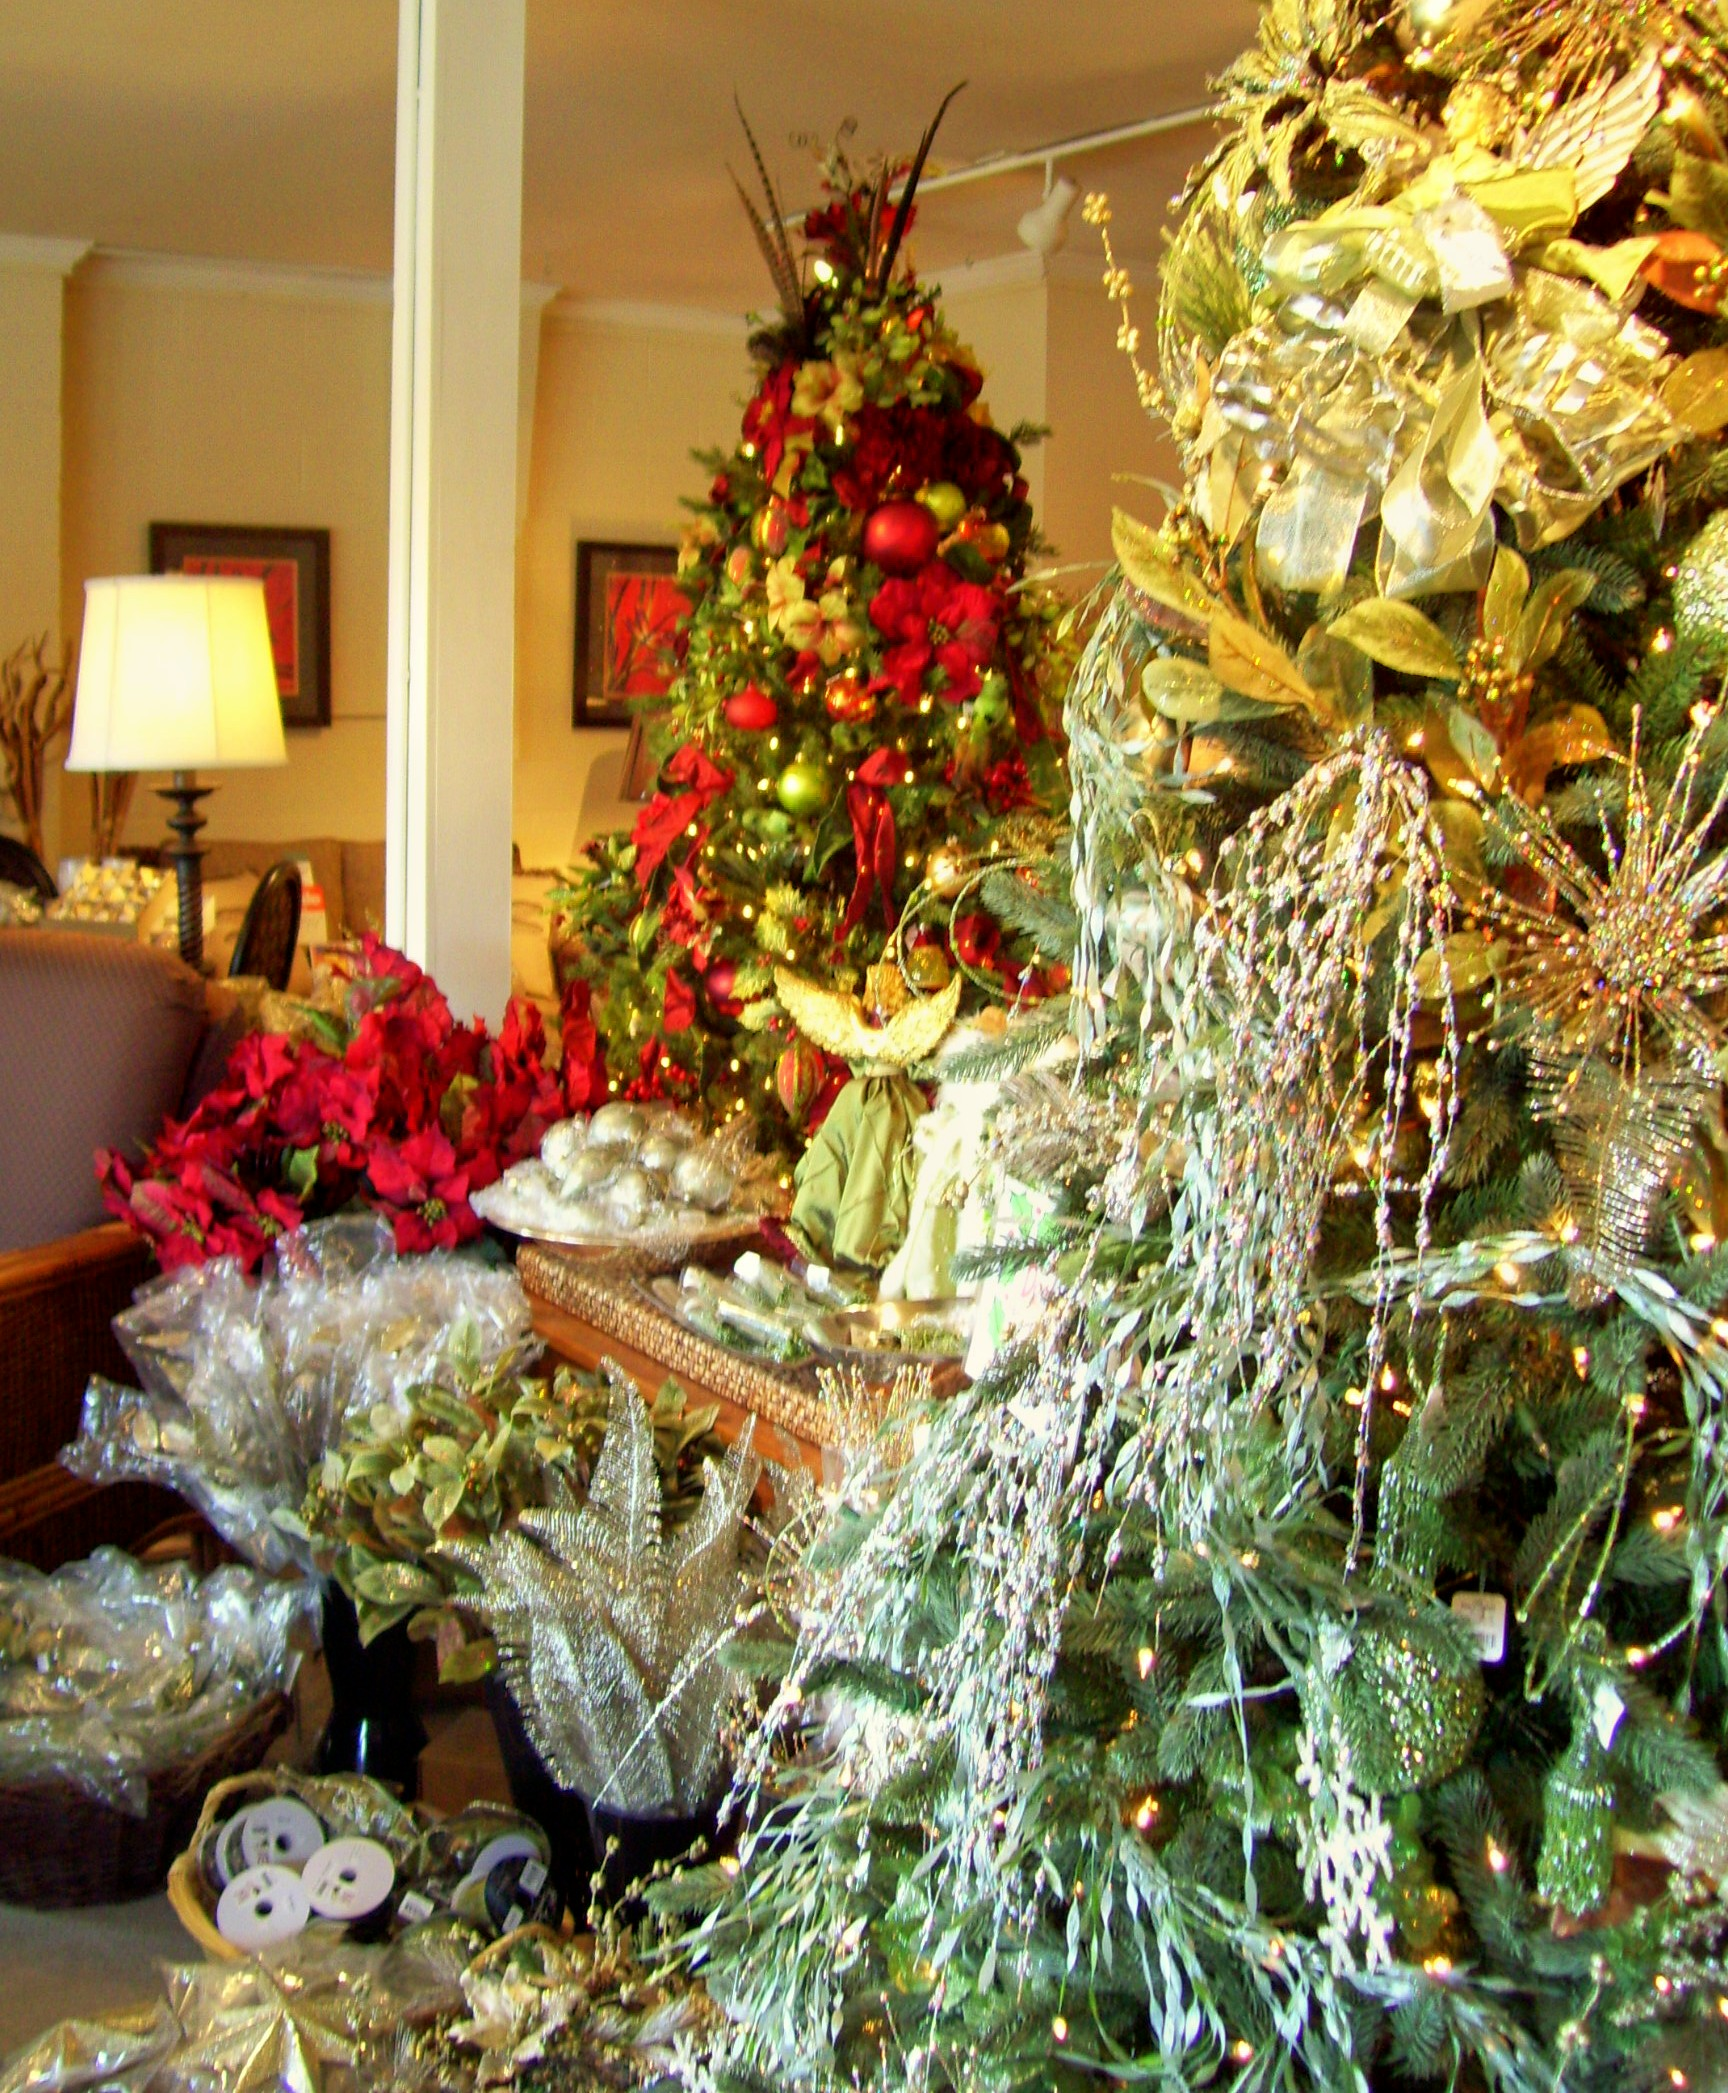 http://brentwood.thefuntimesguide.com/images/blogs/christmas-tree-decorating-in-nashville.jpg